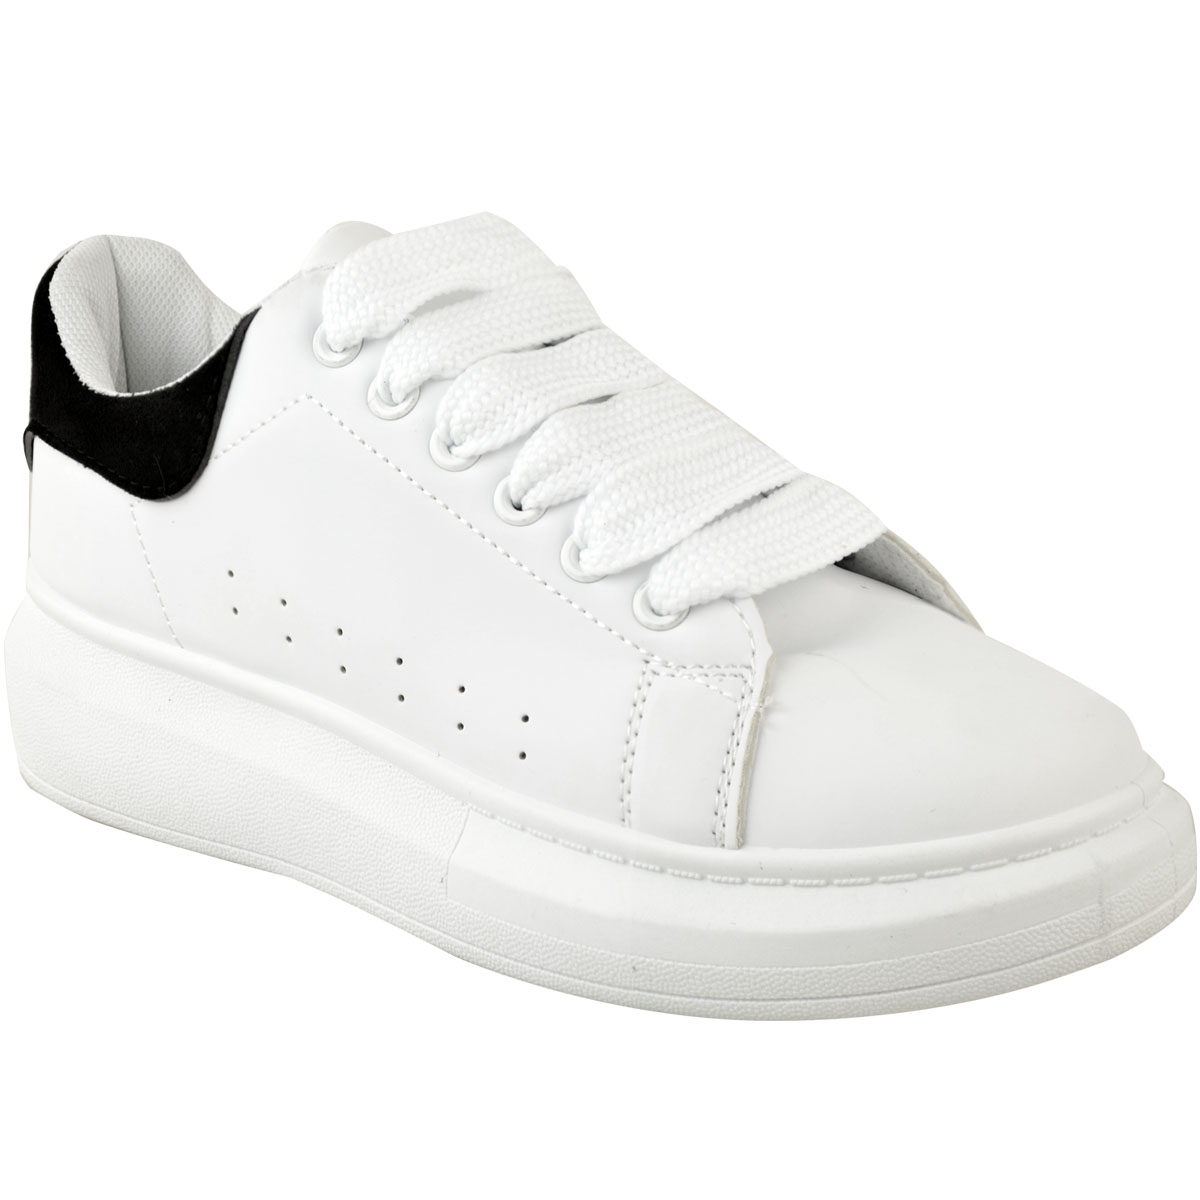 Womens White Oversized Chunky Sneakers